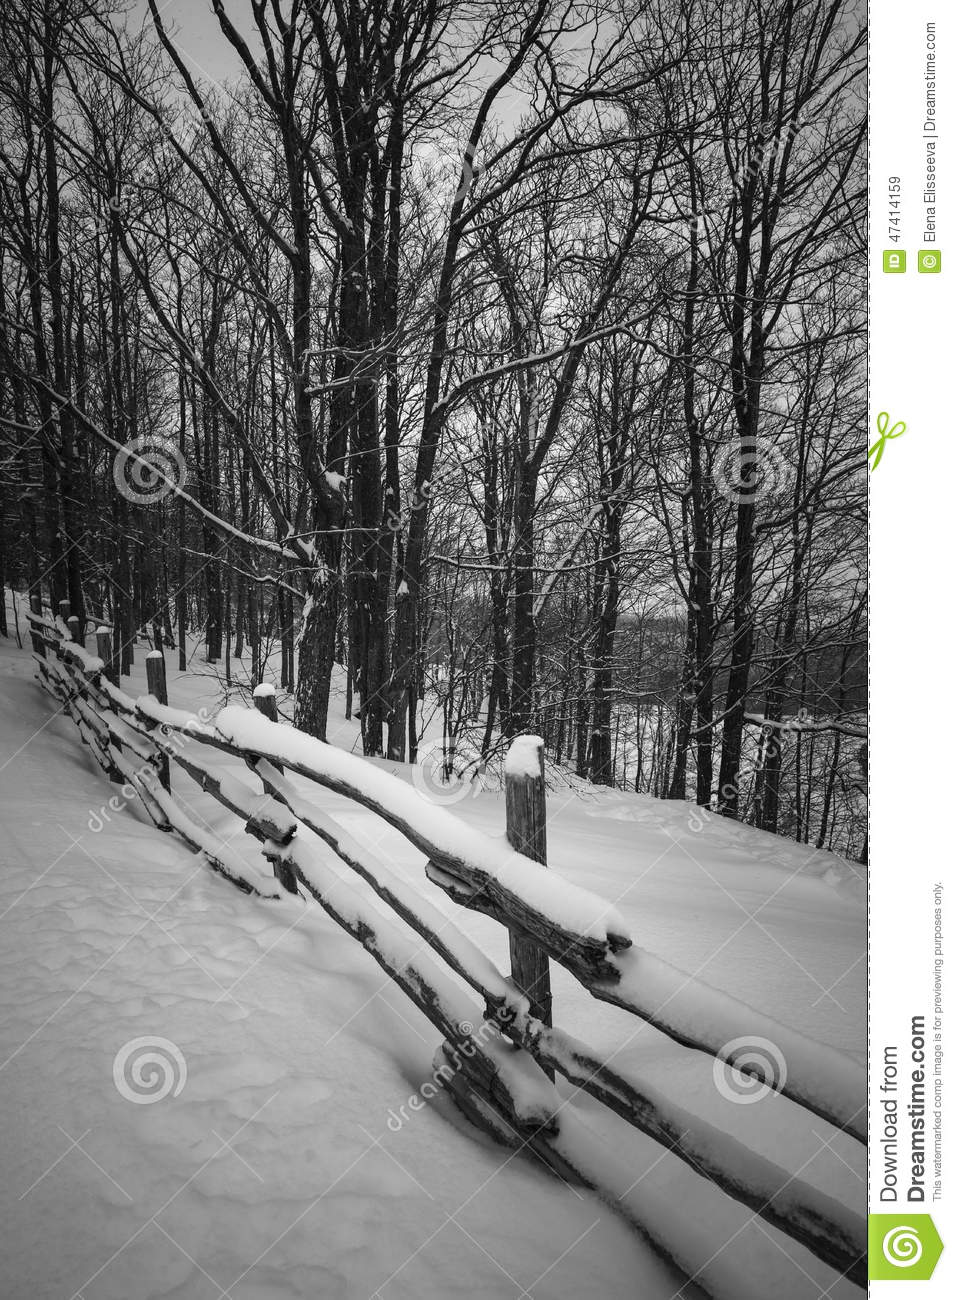 Rural Winter Scene With Fence Stock Photo - Image: 47414159